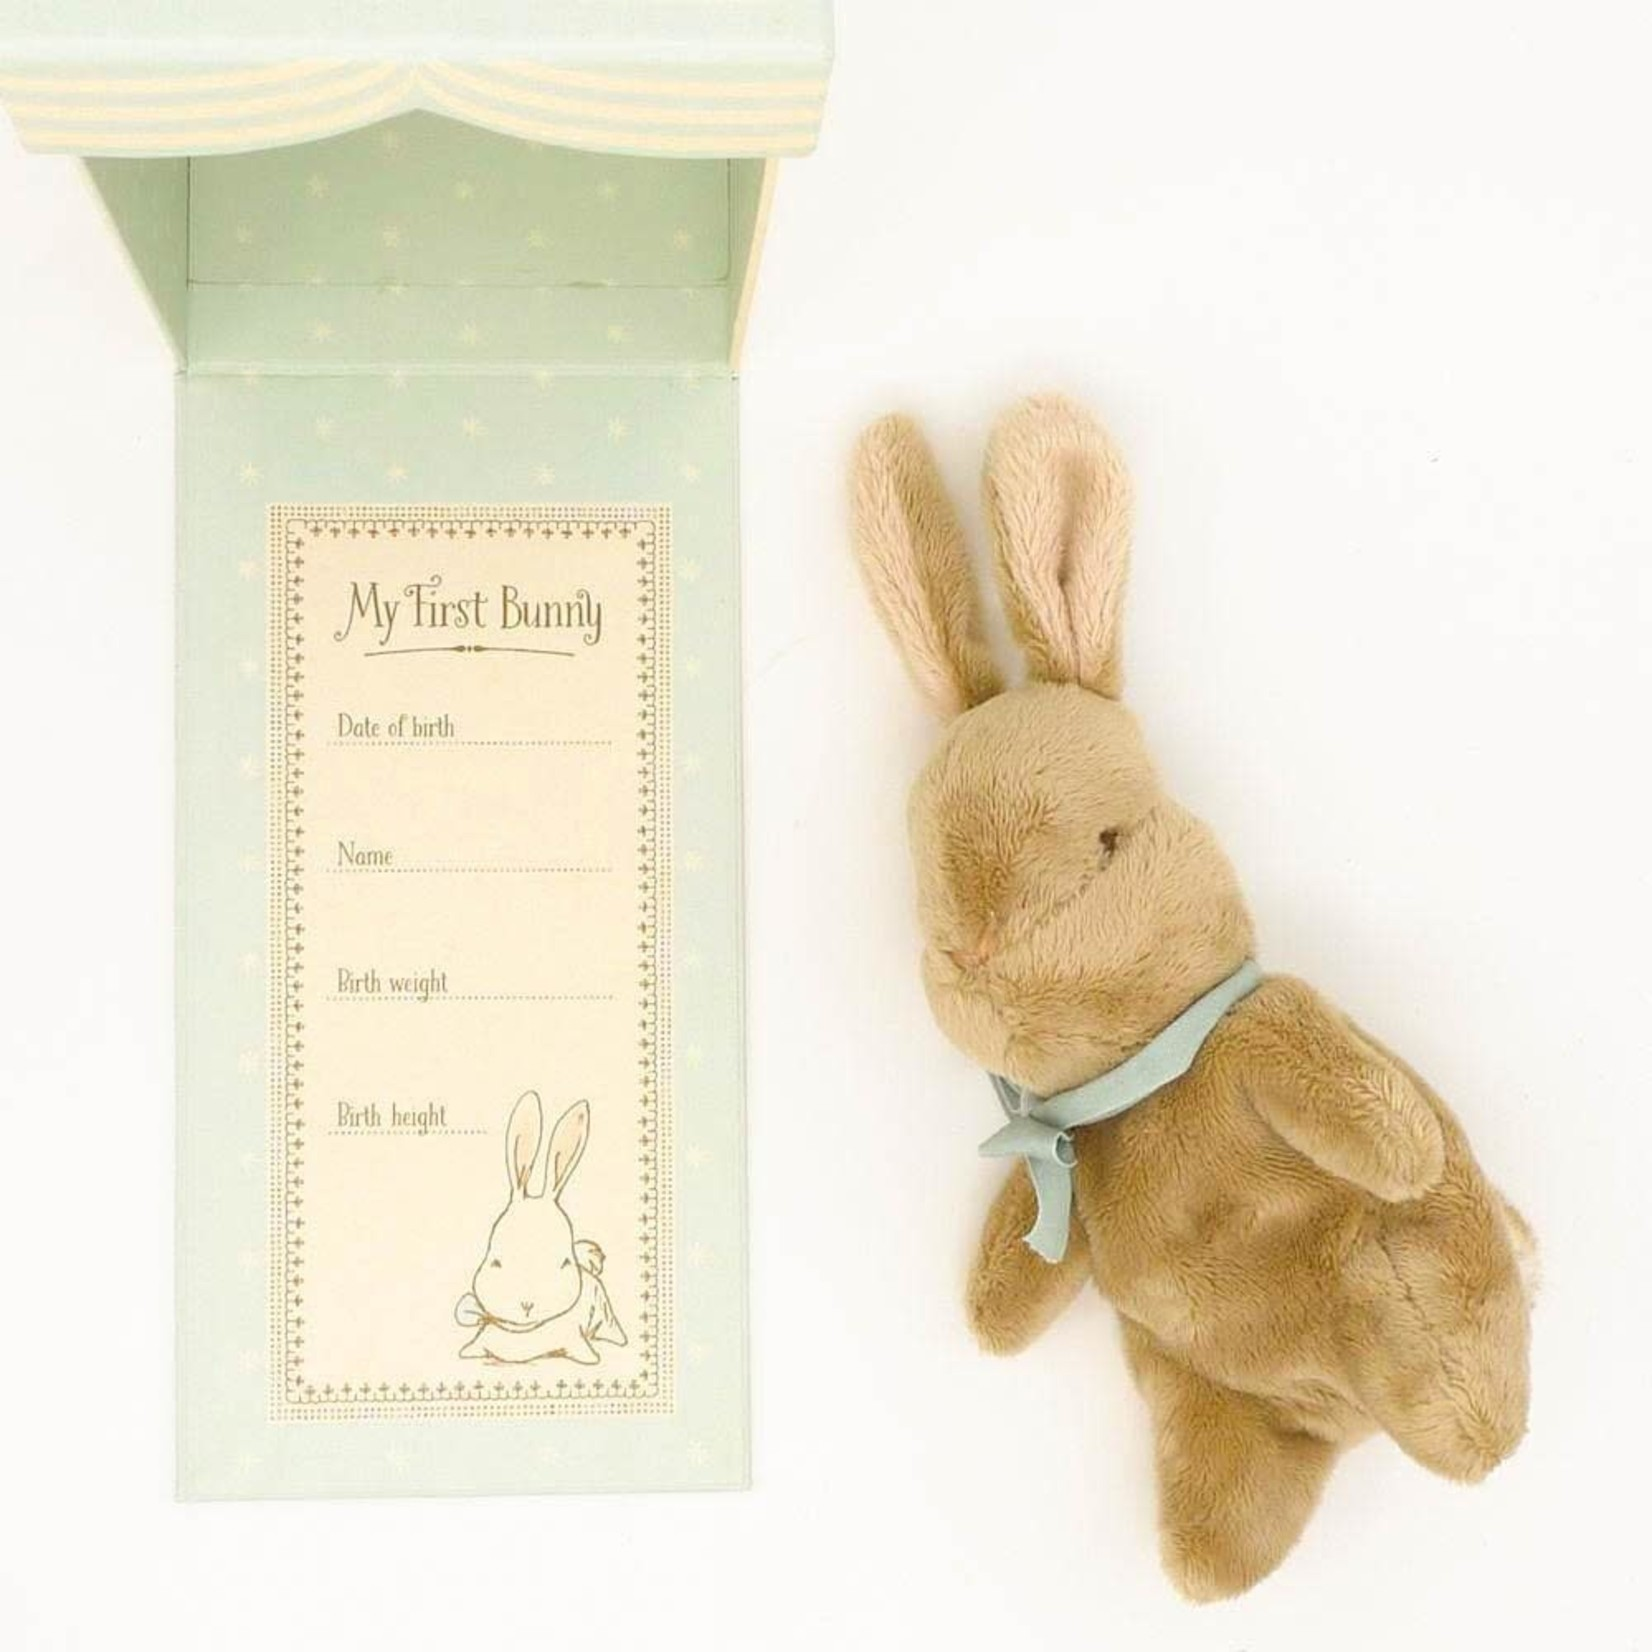 MAILEG MY FIRST BUNNY IN A BOX, BLUE